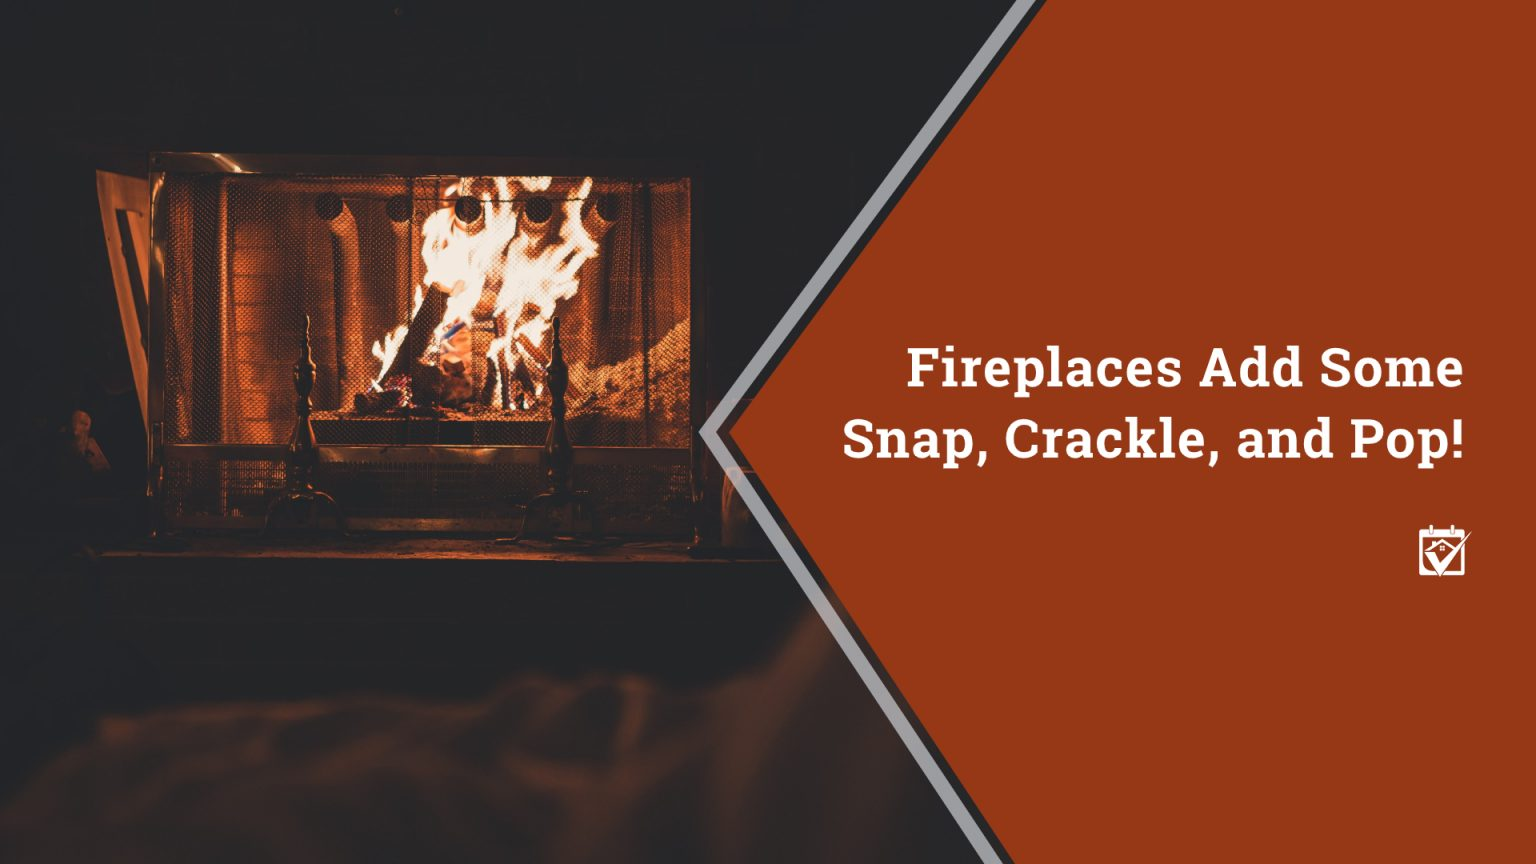 Fireplaces Add Some Snap, Crackle, and Pop!